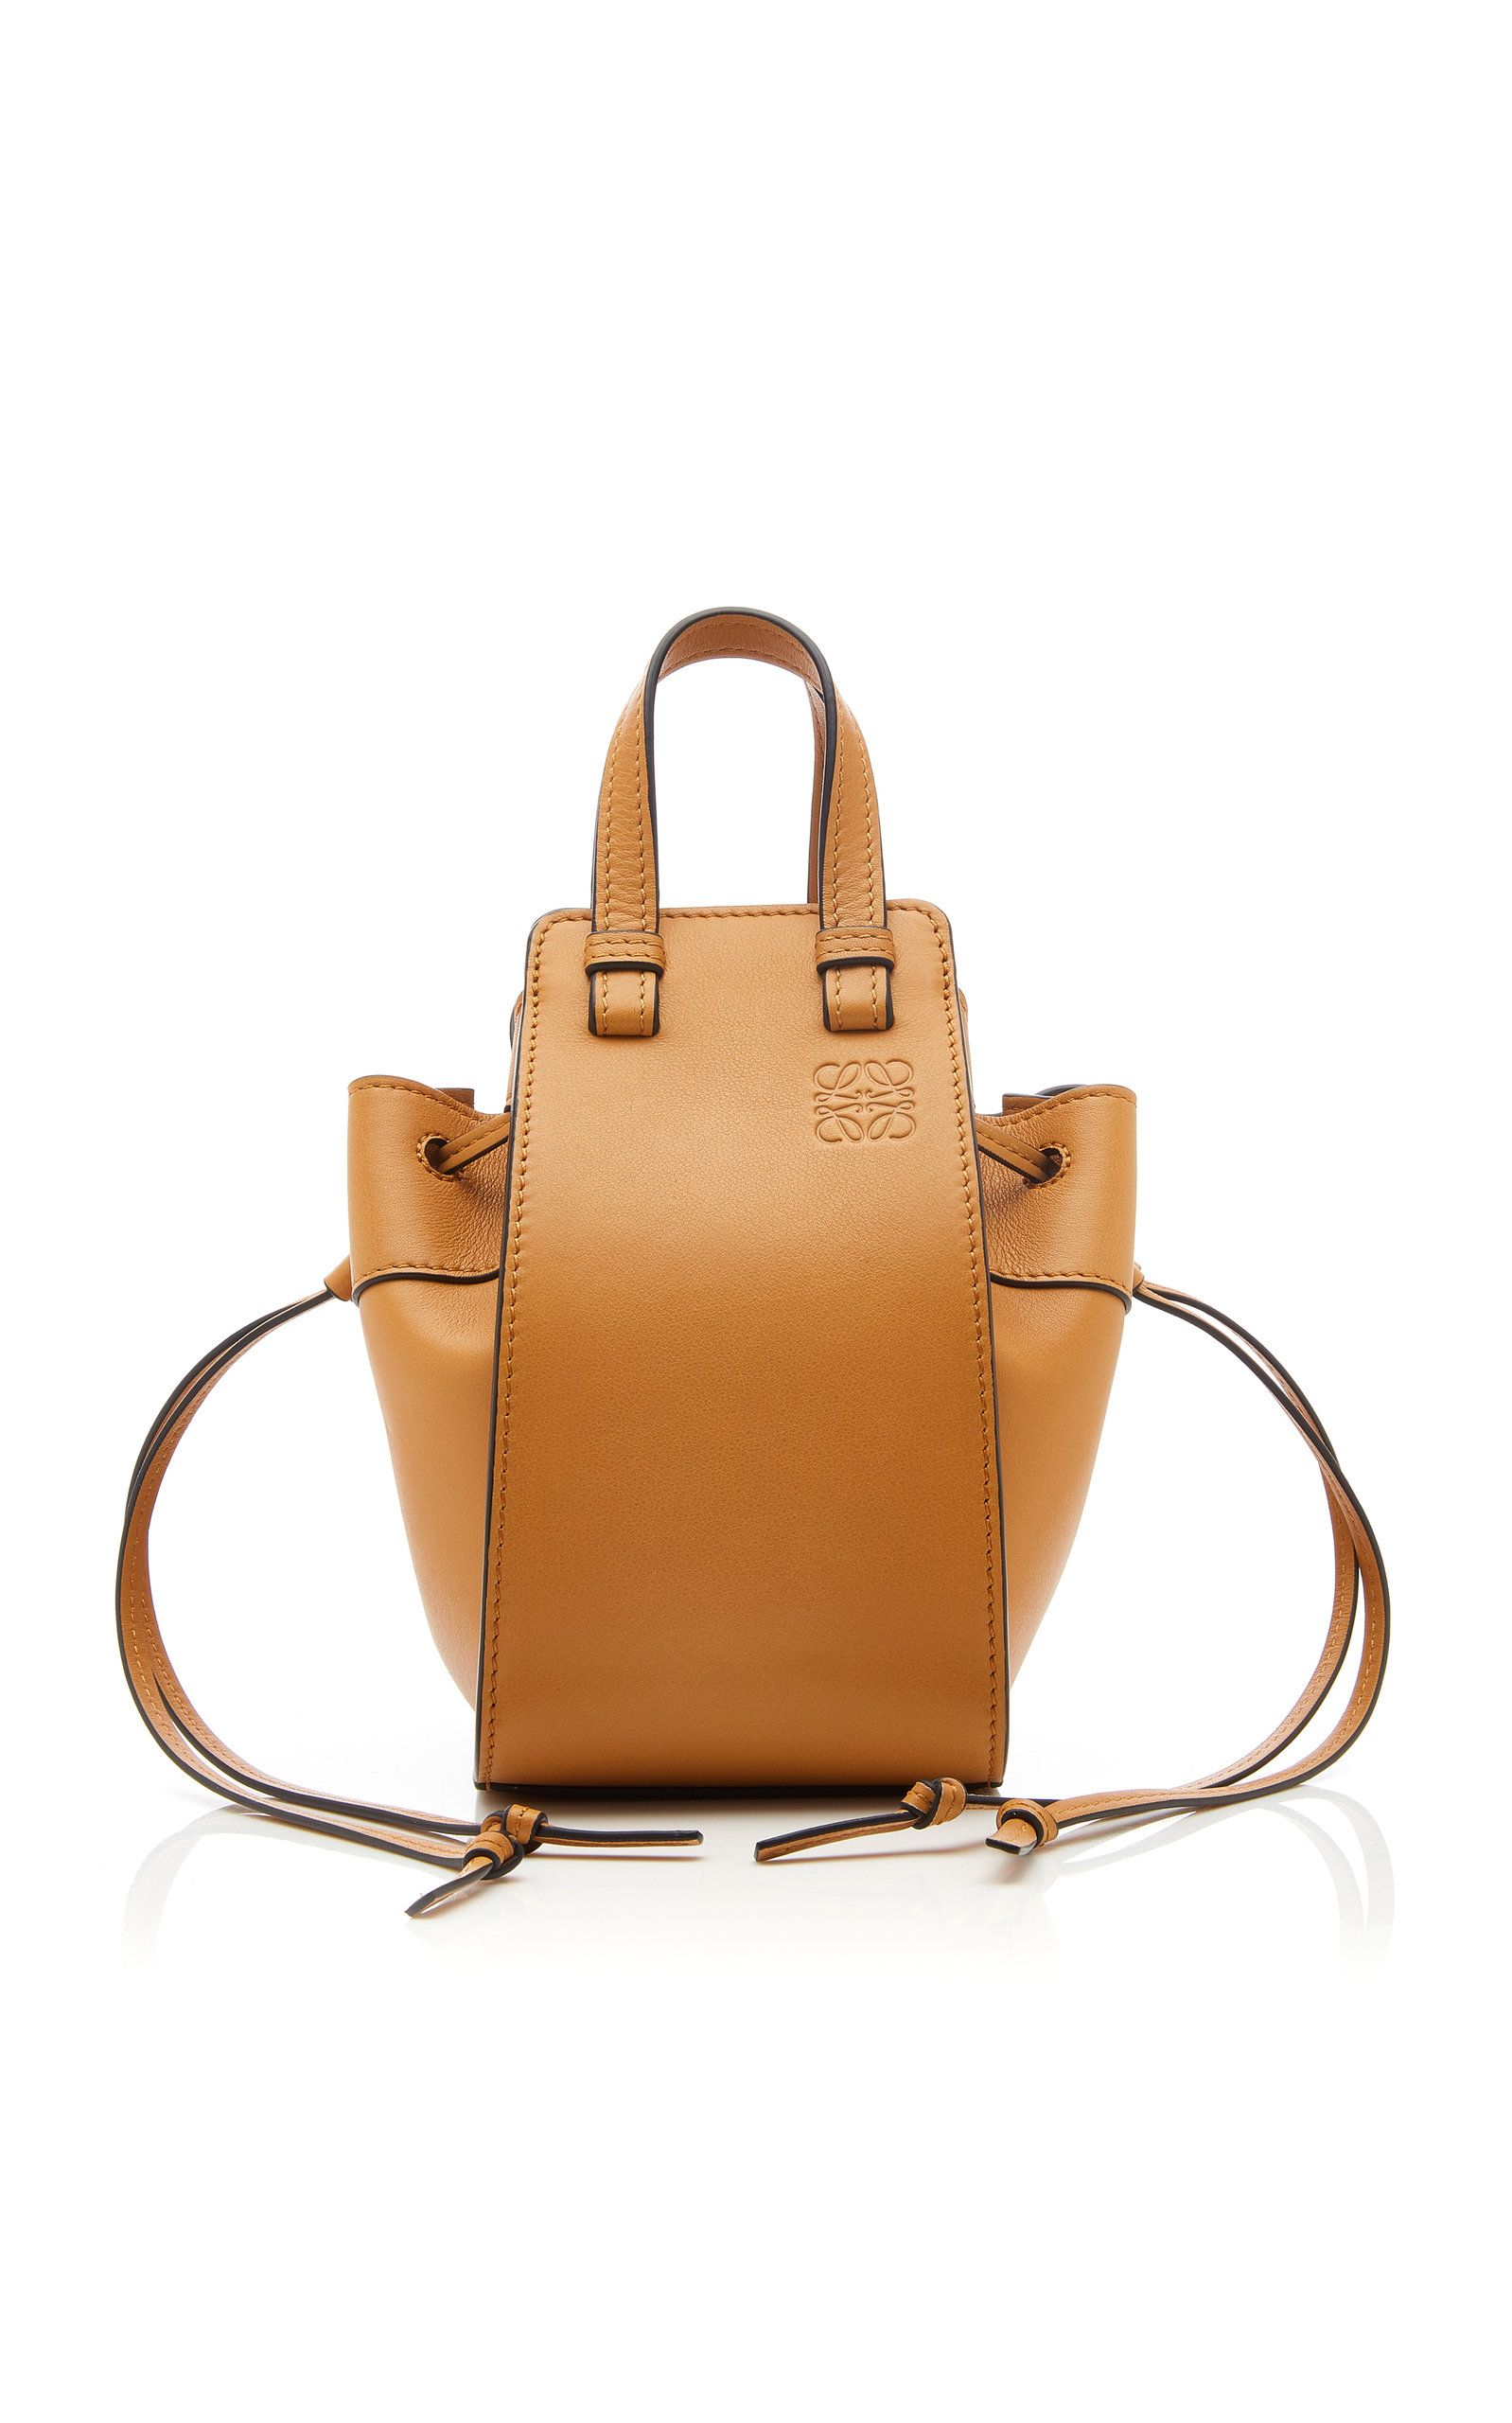 5d590375a0bc Hammock DW Mini Leather Bag | Leather | Bags, Leather pouch и ...